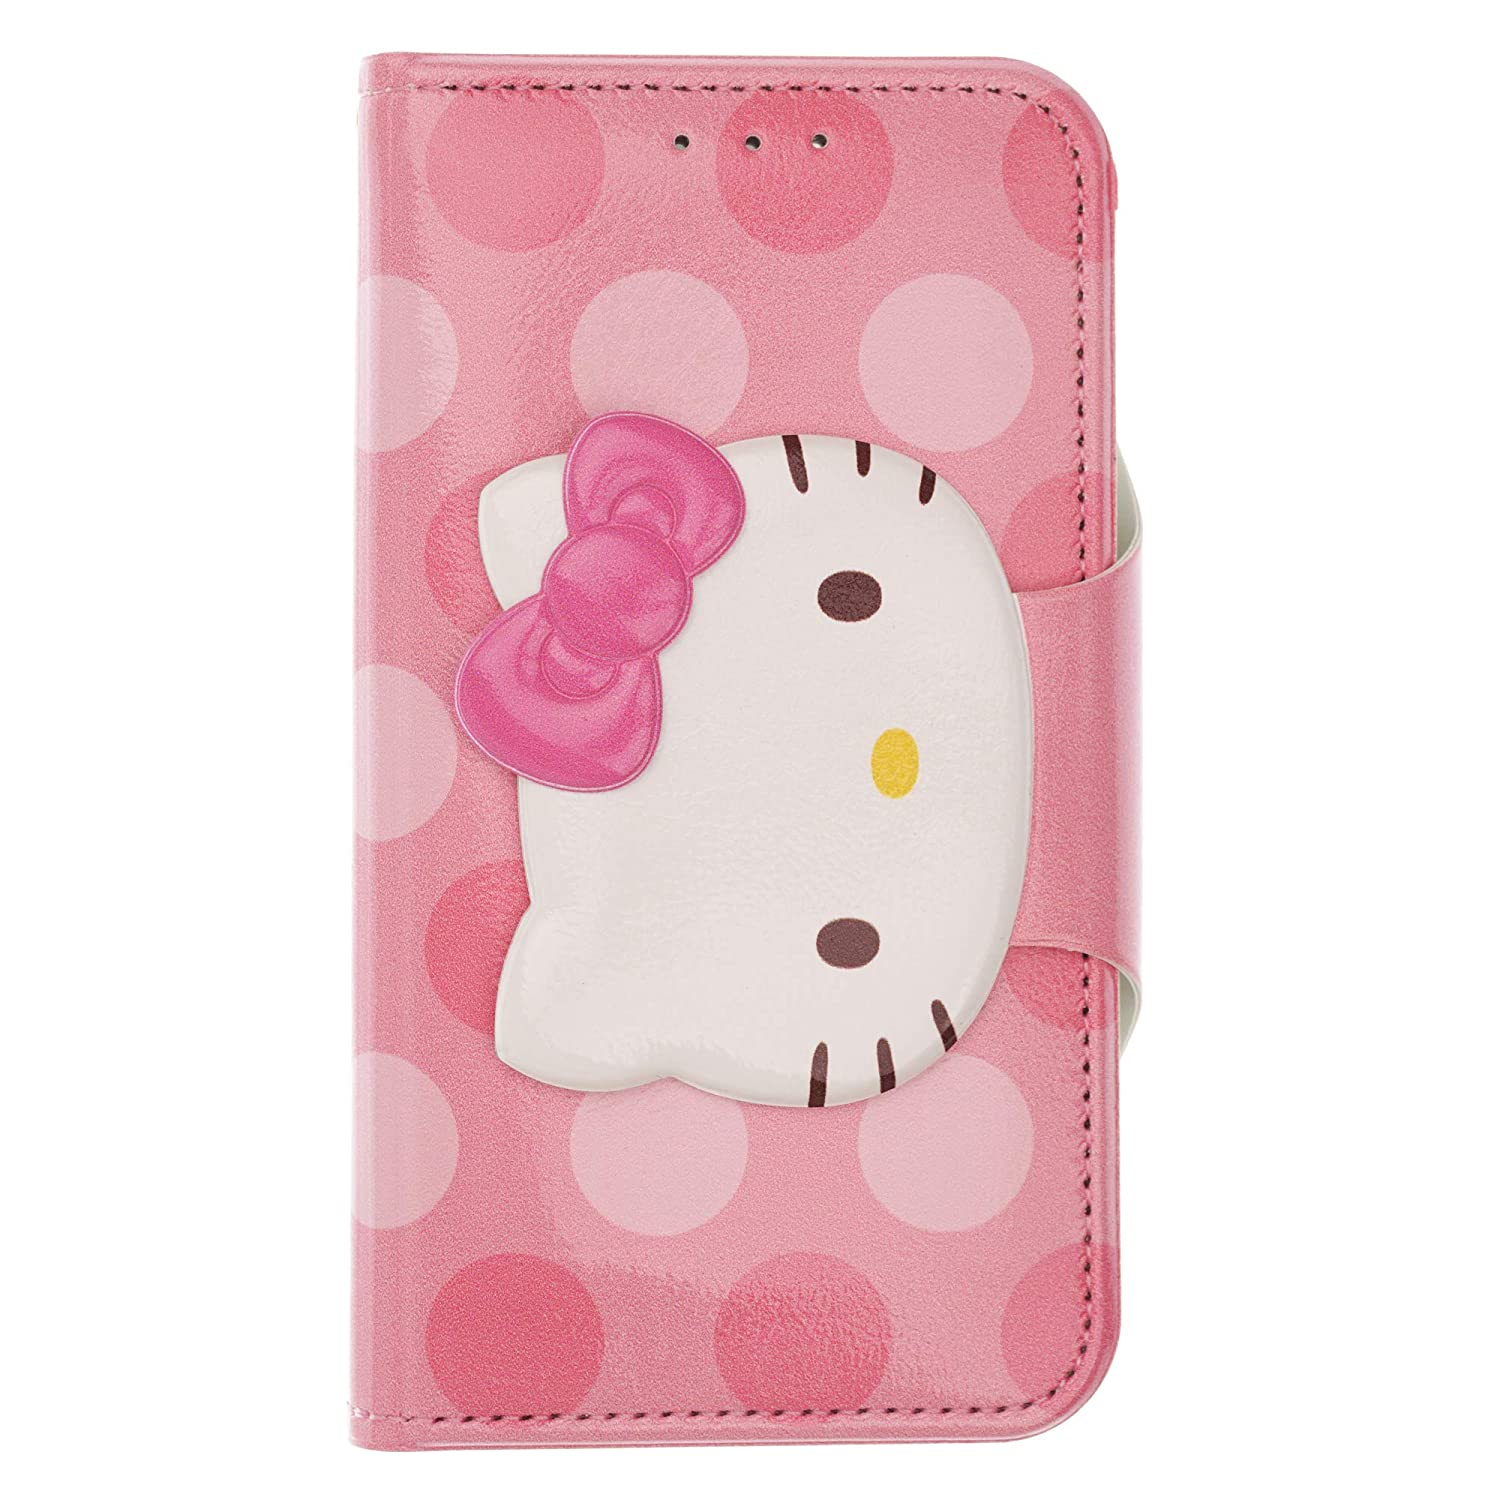 super popular b8c67 2825f iPhone Xs Max Case Hello Kitty Cute Diary Wallet Flip Mirror Cover for [  Apple iPhone Xs Max (6.5inch) ] Case - Face Button Hello Kitty Hot Pink